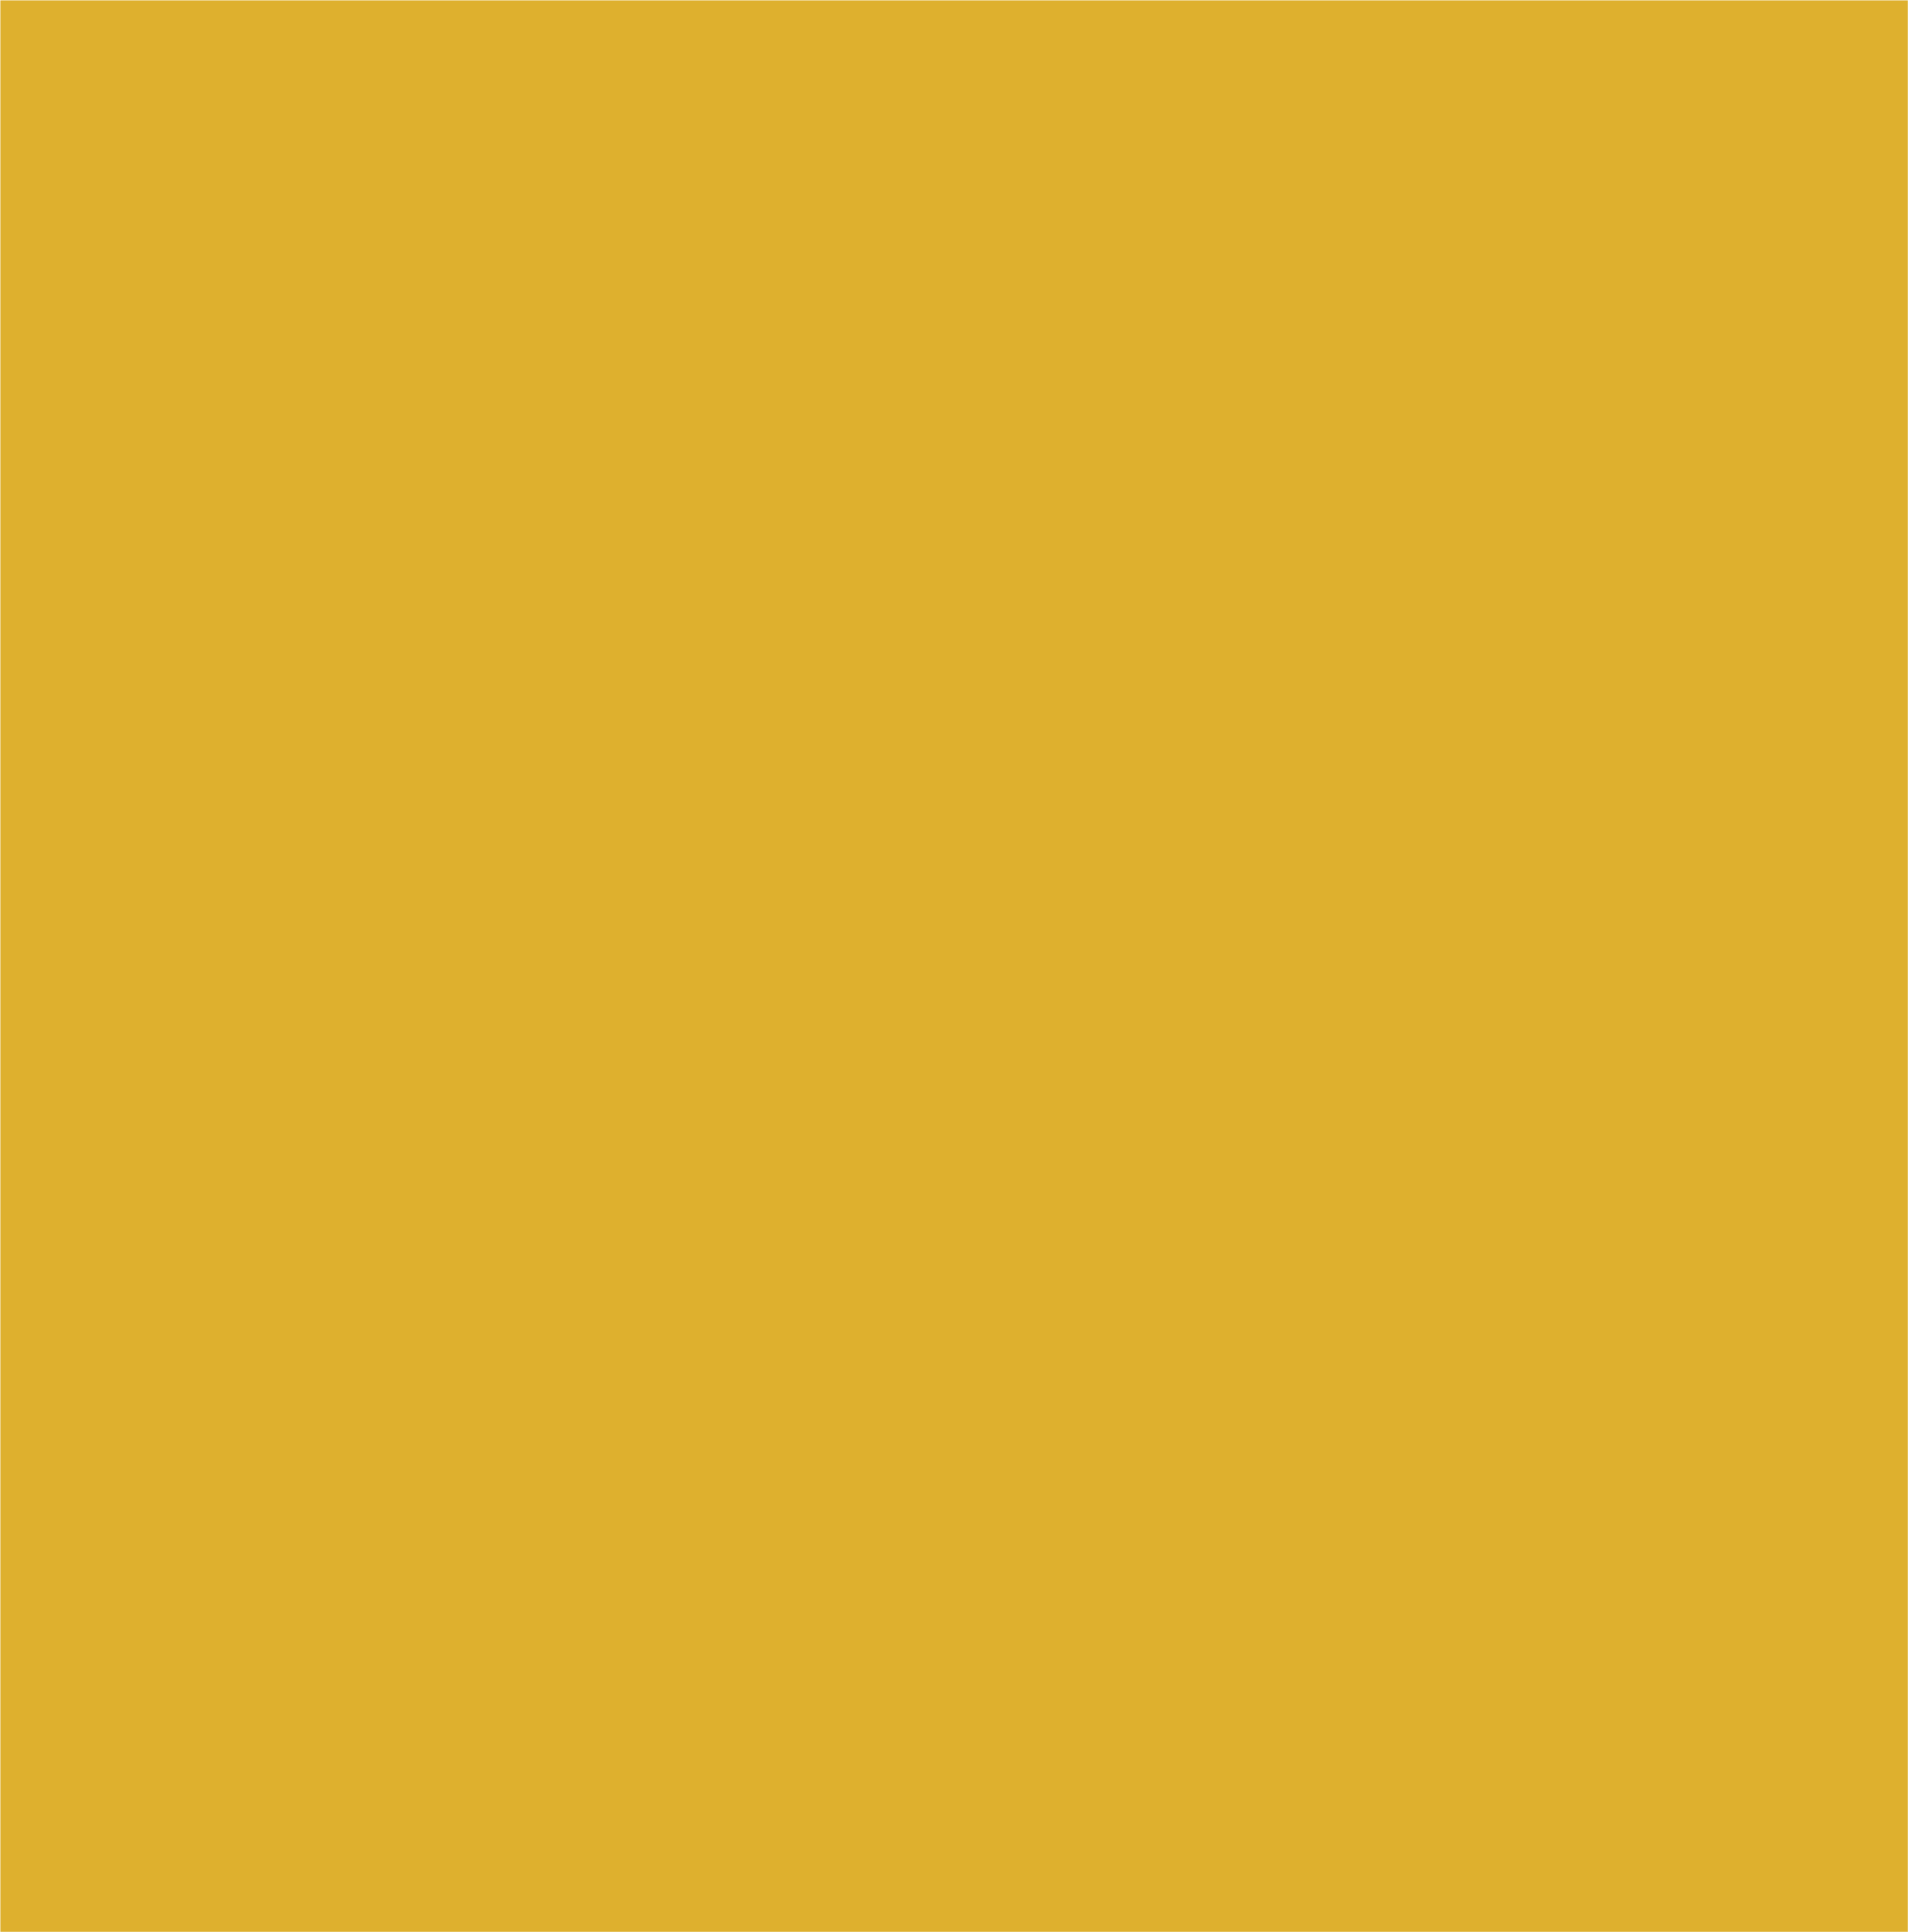 Yellow from the secondary color palette.